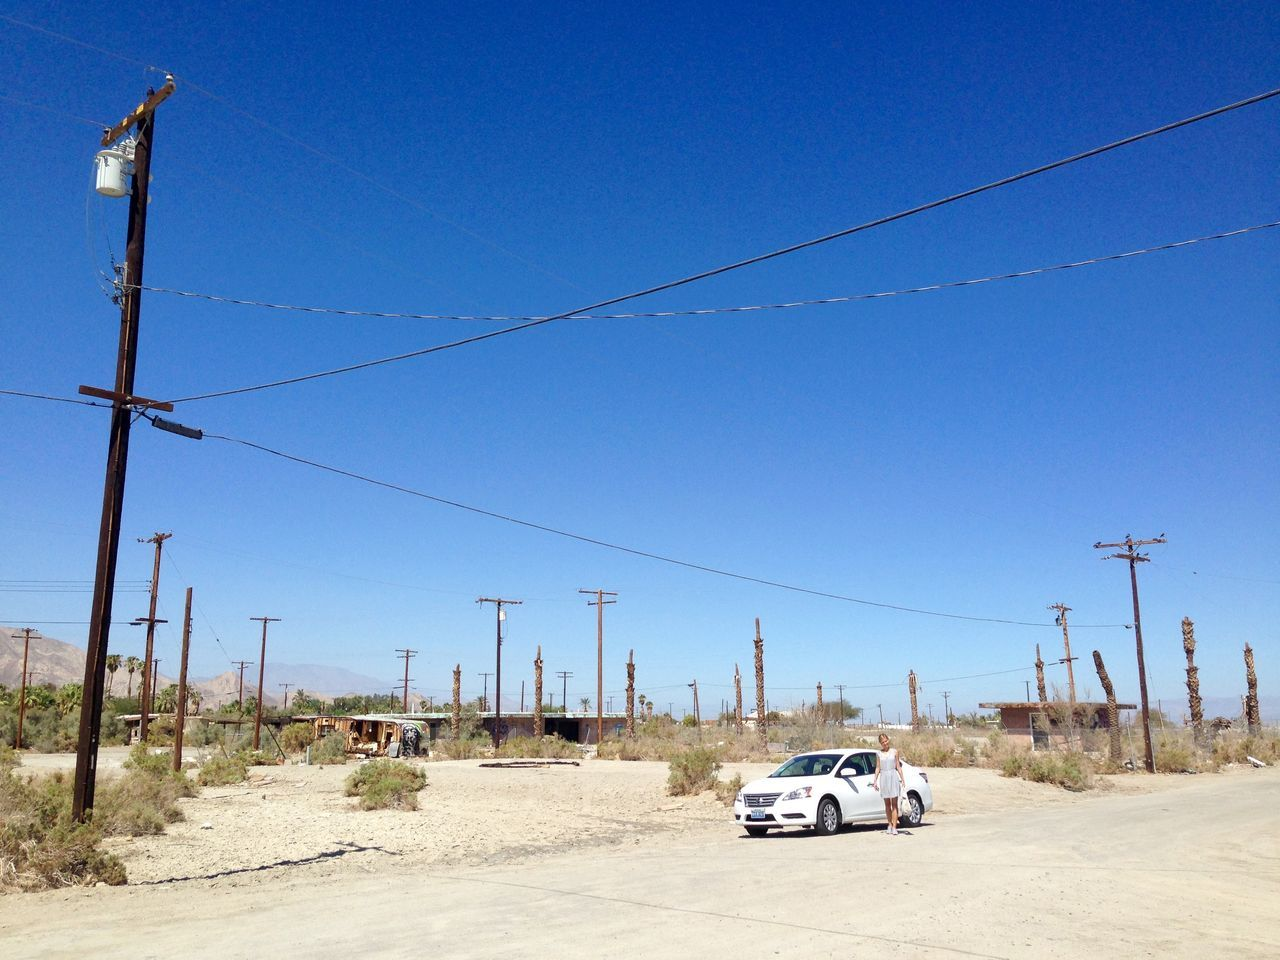 Apocalypse Apocalyptic Apocalyptic Visions Car Desert Desert Beauty Desert City Desert Life Deserted Places Deserted Scapes Deserts Around The World Forsaken Lonely Car Salton Sea Zombie Apocalypse